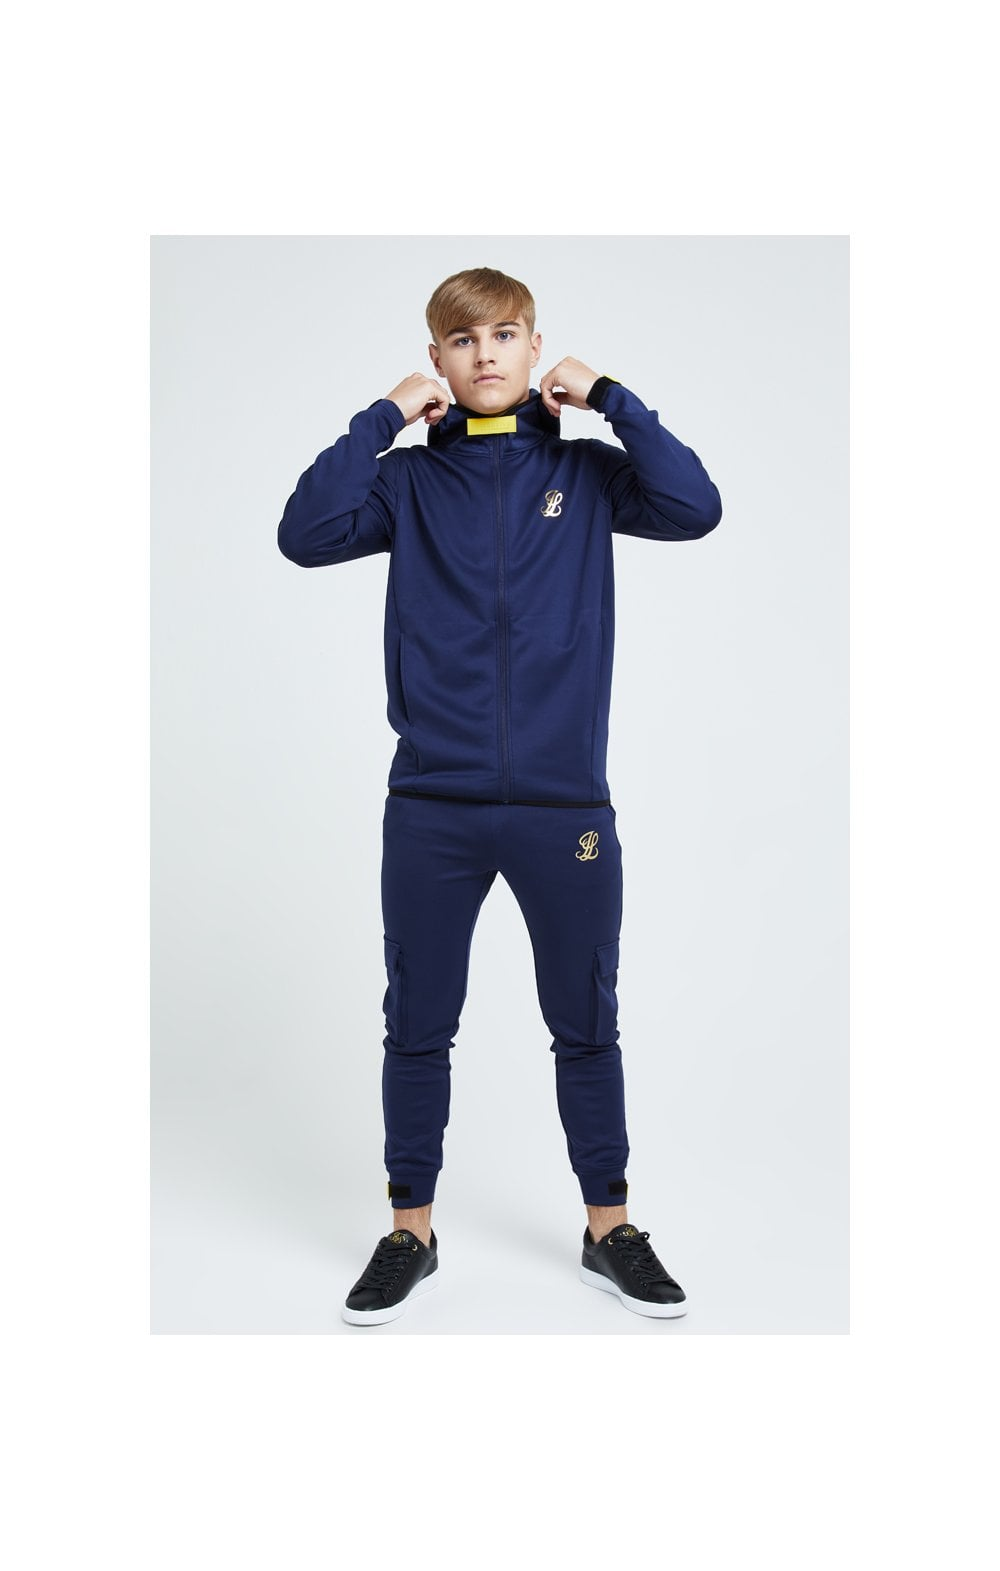 Illusive London Element Agility Zip Through Hoodie - Navy Gold & Yellow (4)